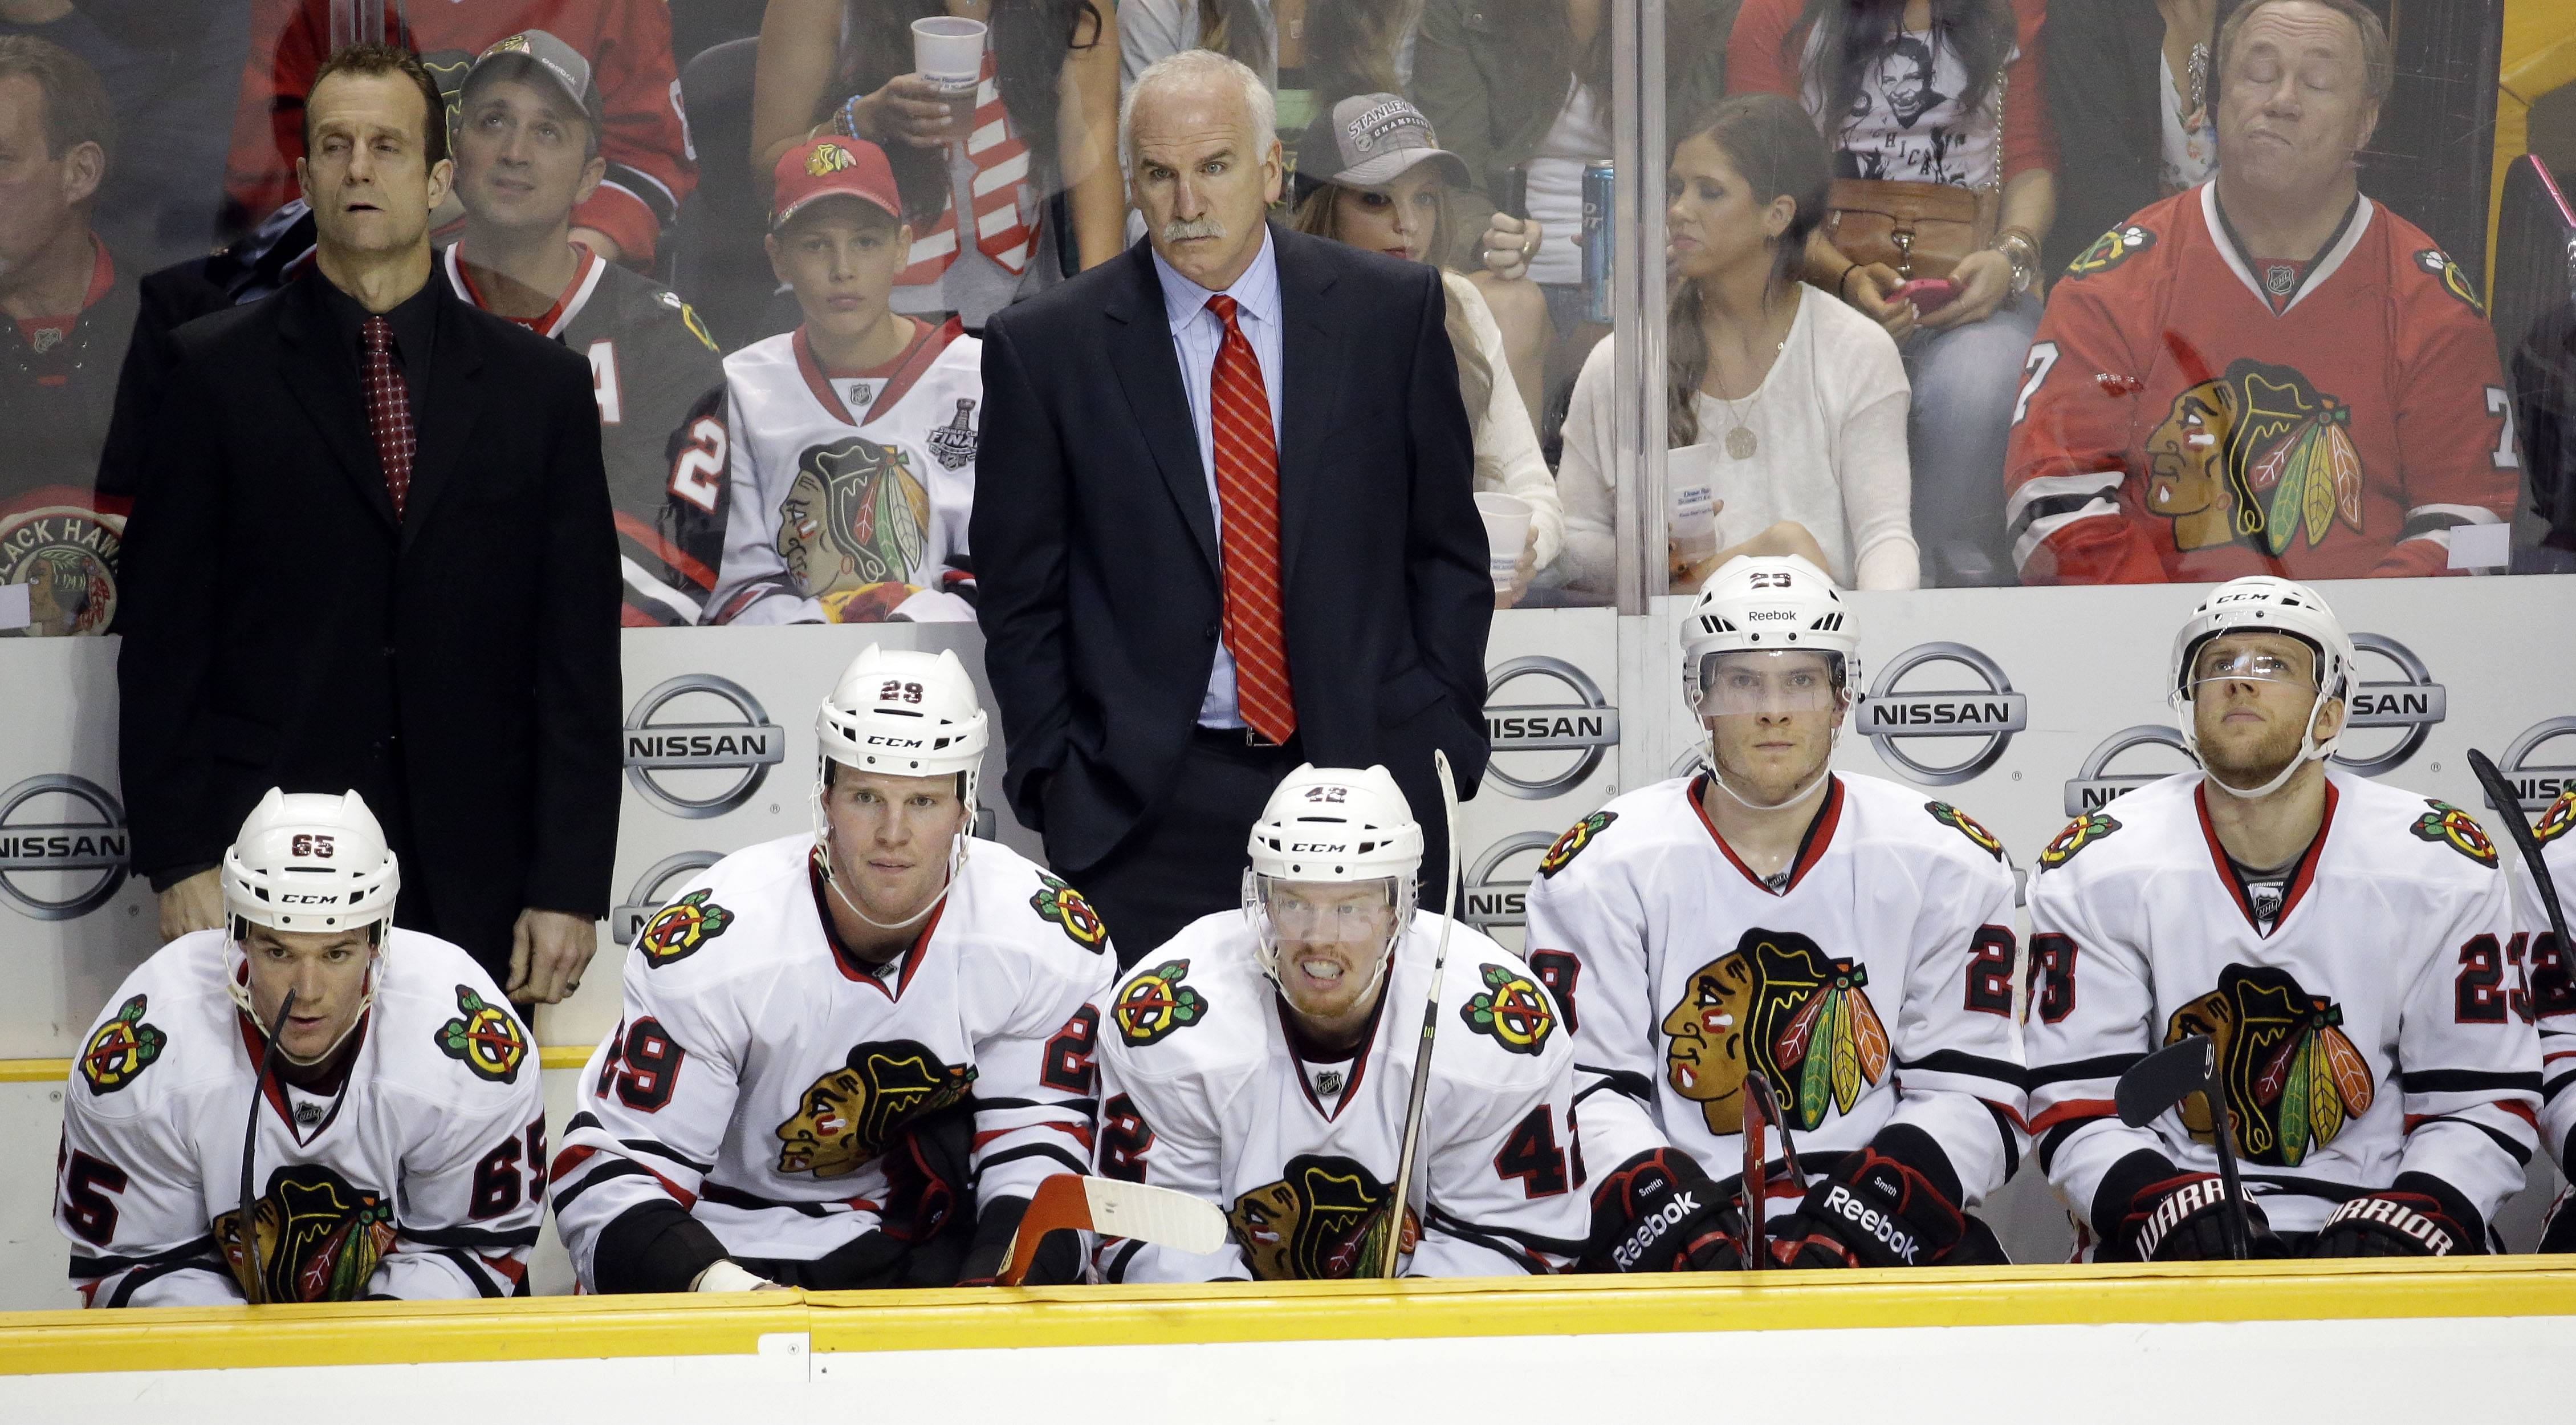 Chicago Blackhawks coach Joel Quenneville, center, and assistant coach Jamie Kompon, left, watch the action in the final seconds of an NHL hockey game against the Nashville Predators Saturday in Nashville, Tenn. The Hawks will face the St. Louis blues in the first round of the playoffs, beginning Thursday.